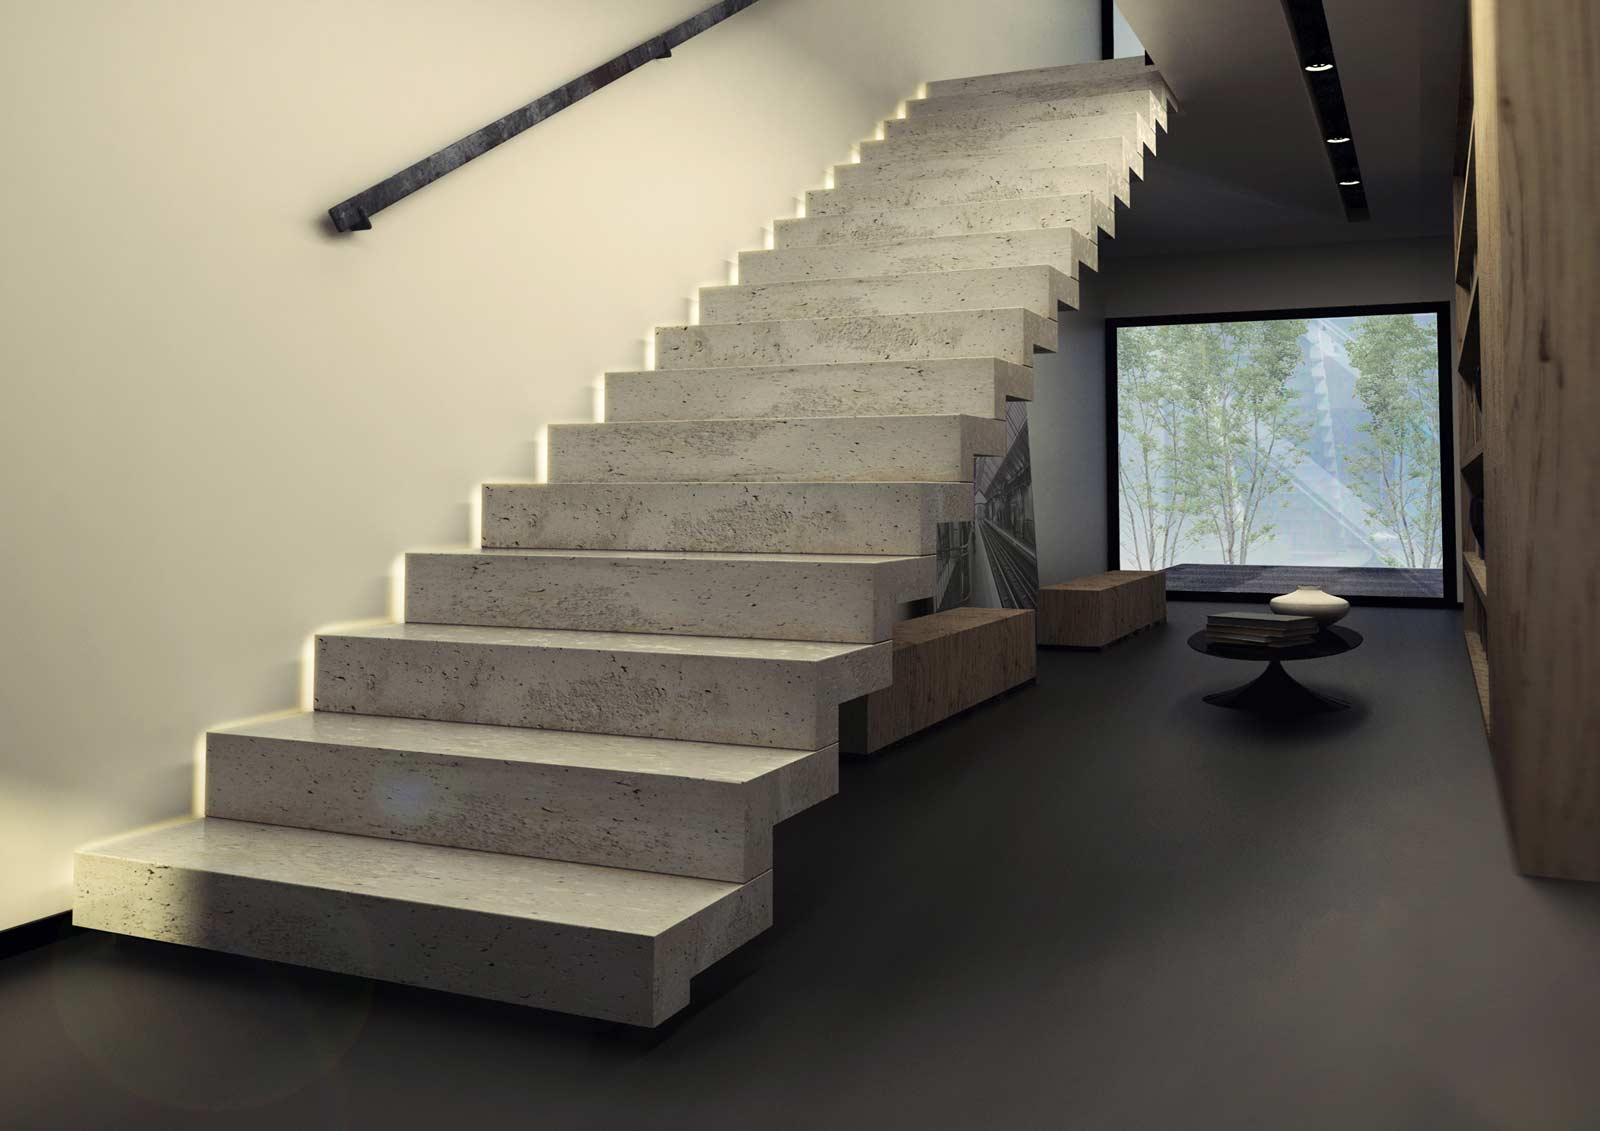 Escalier Beton Design Le Top 10 Des Escaliers Droits Design Le Blog De Loftboutik